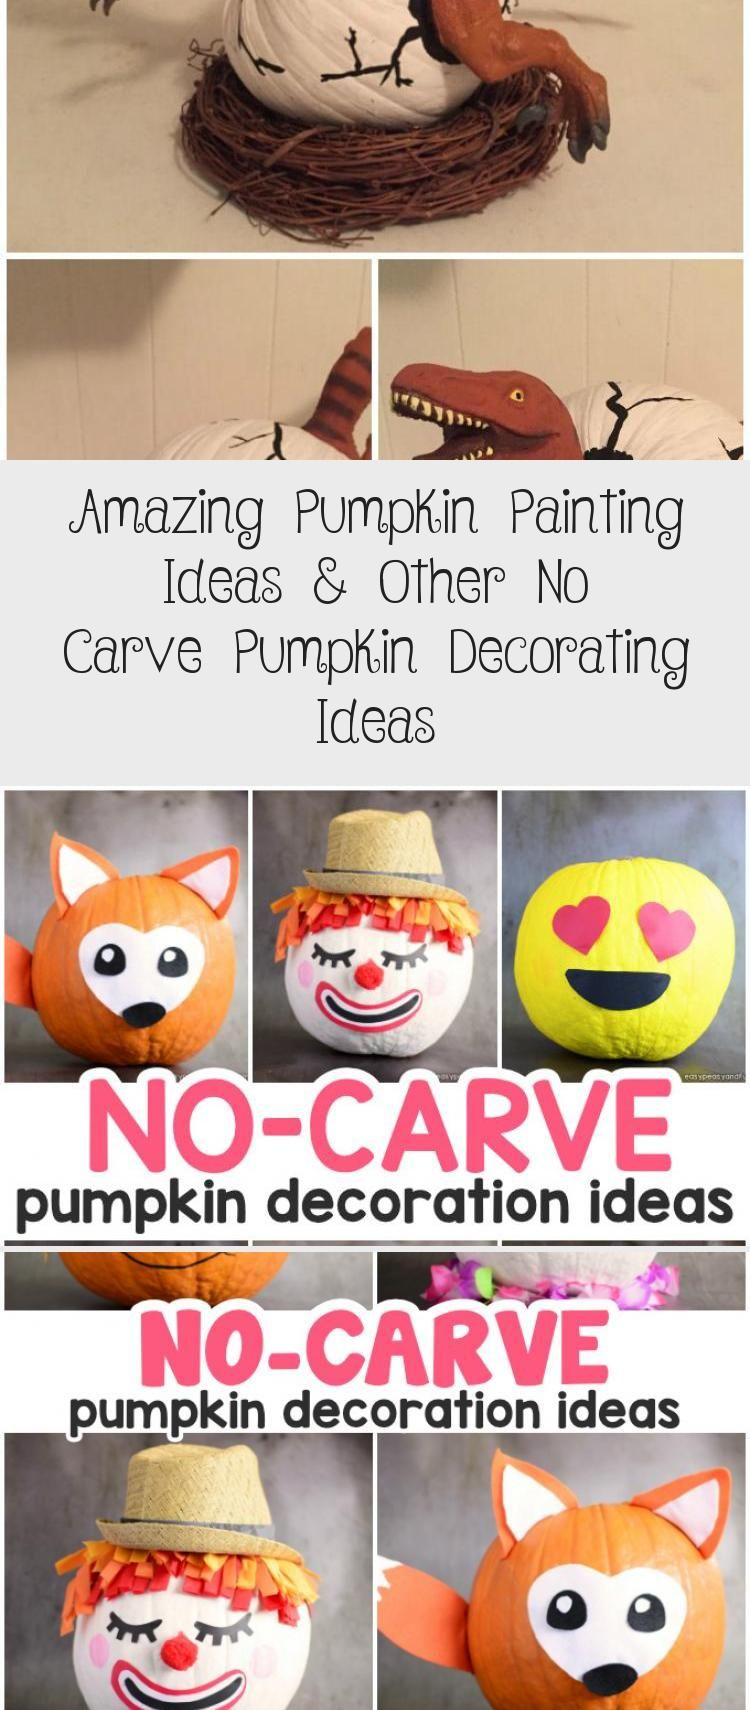 Amazing Pumpkin Painting Ideas & Other No Carve Pumpkin Decorating Ideas #paintingideasAbstract #paintingideasForFurniture #paintingideasBeach #paintingideasVsco #paintingideasForKitchen #pumpkinpaintingideas